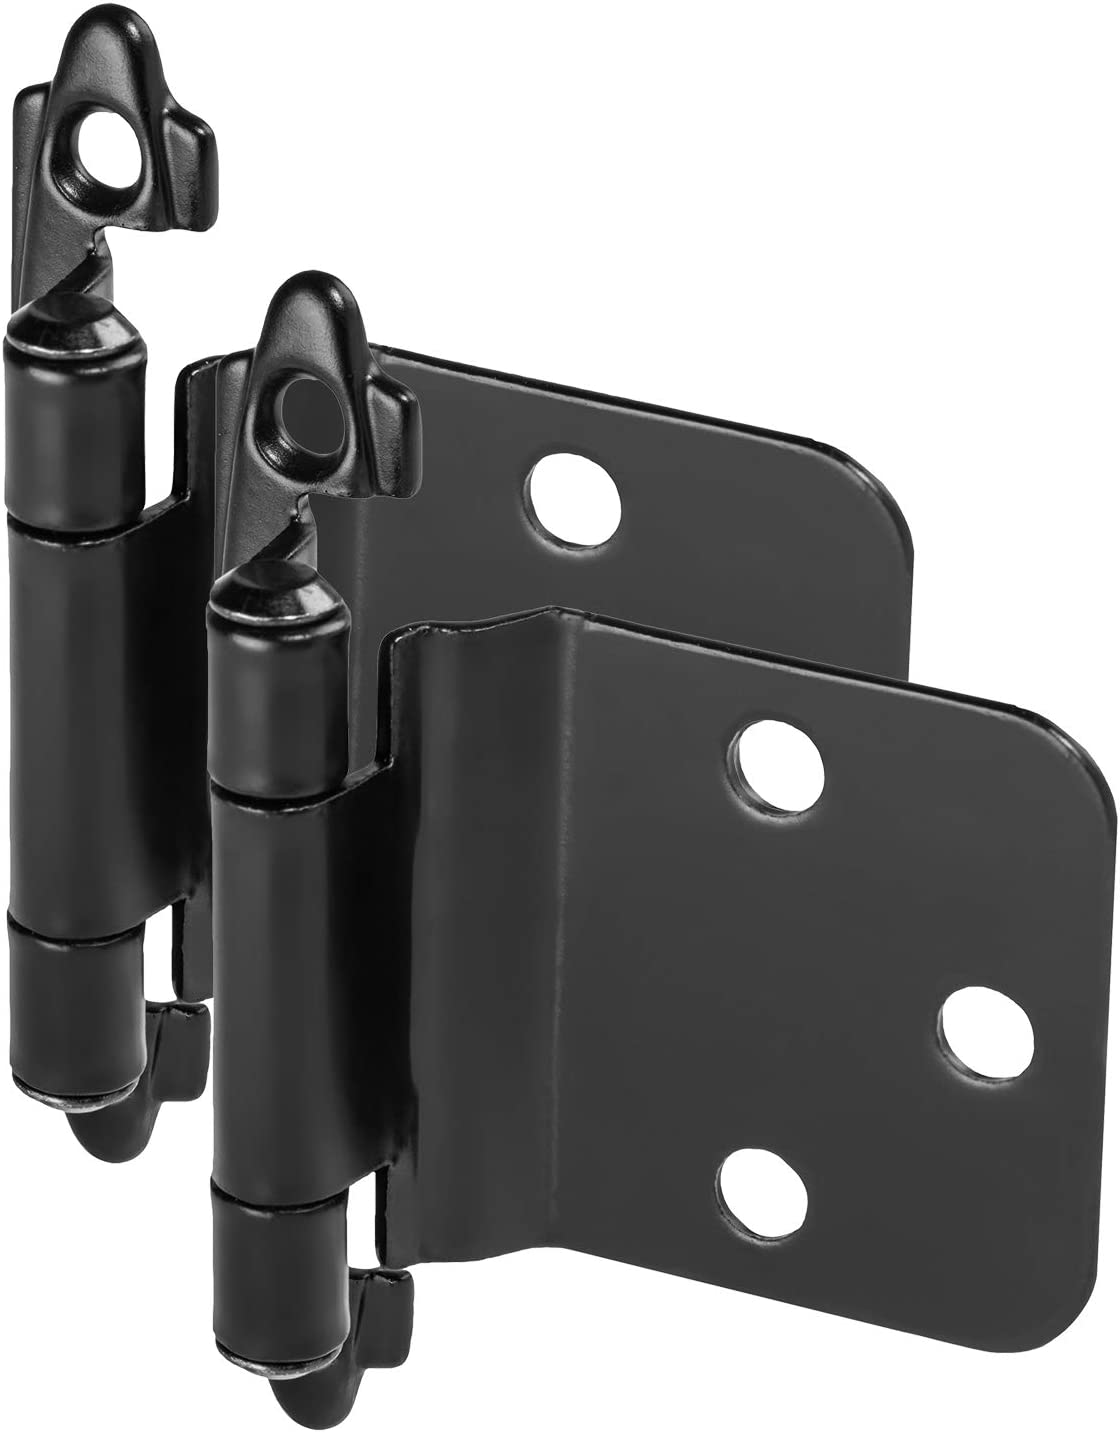 10 Pair Pack - Cosmas 16890-FB Flat Black Cabinet Hinge Variable Overlay with 30 Degree Reverse Bevel (Pair) [16890-FB]